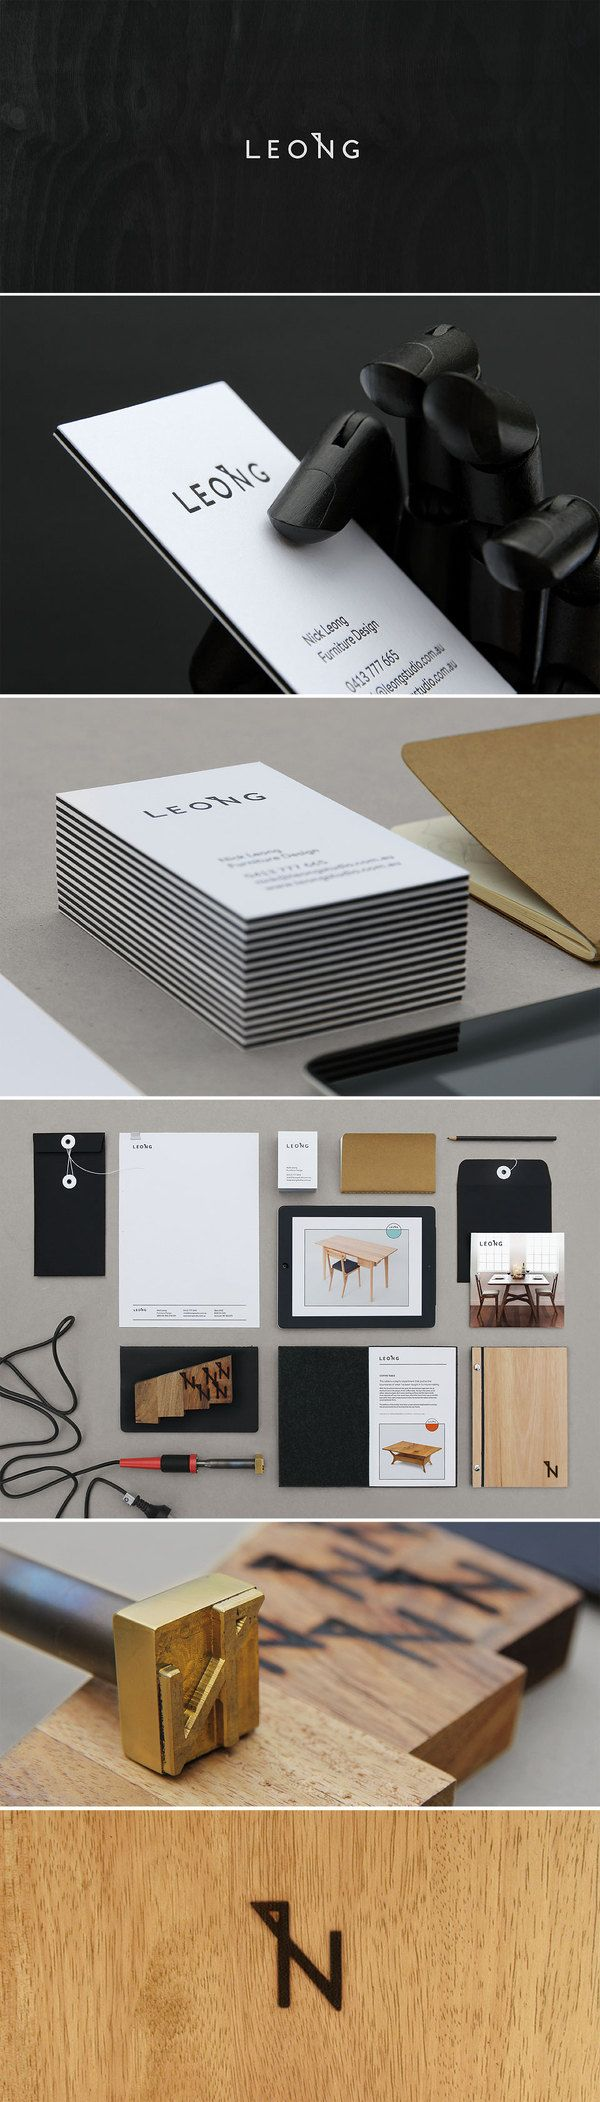 Furniture company corporate identity and logo design. I love how it includes both a print stationary suite and a branding logo for the furniture.